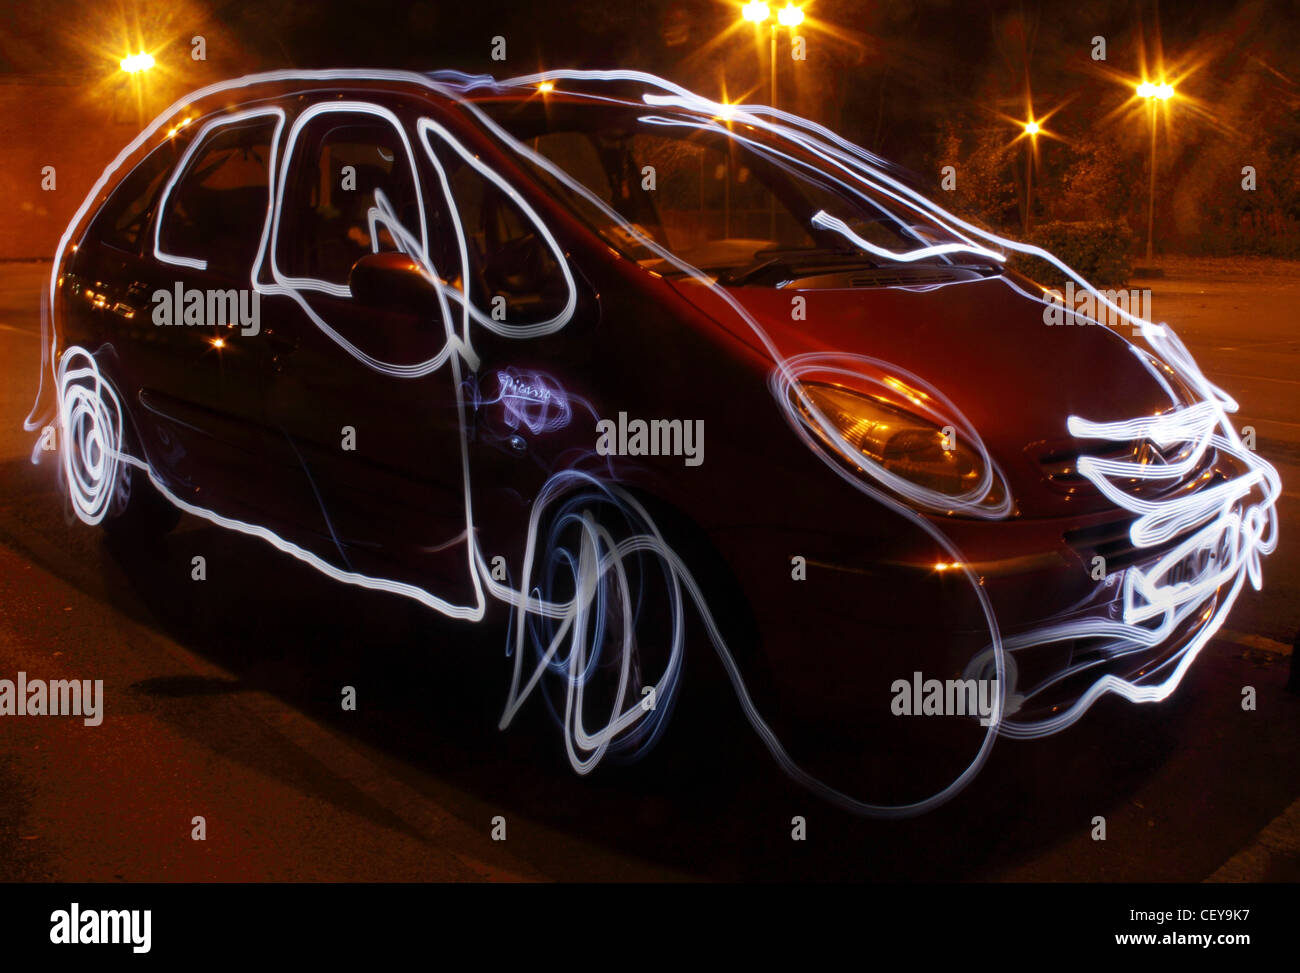 Example of long exposure painting with light. LED torch with a camera mounted on a tripod. Citroen Picasso. - Stock Image